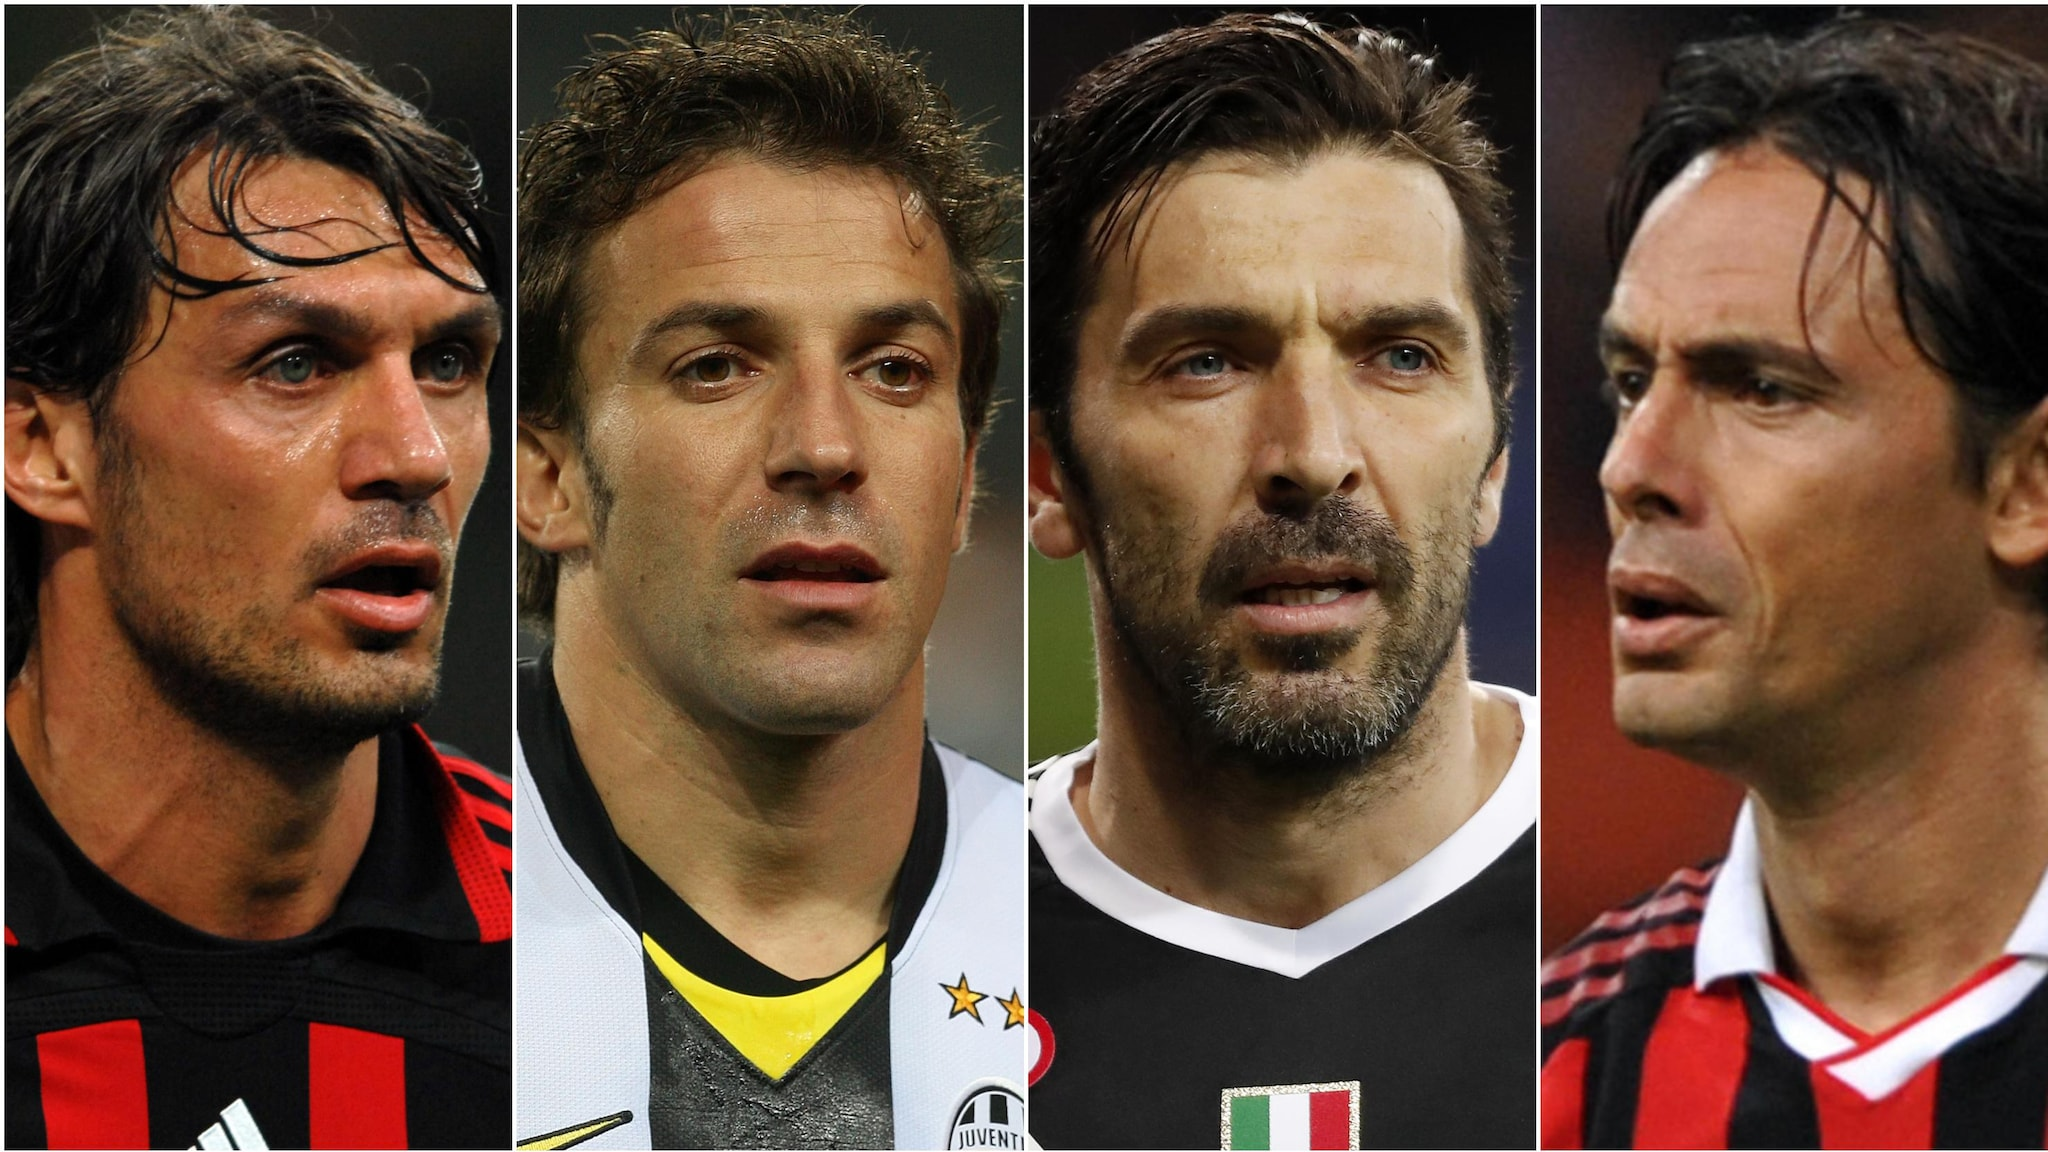 Italy's top performers